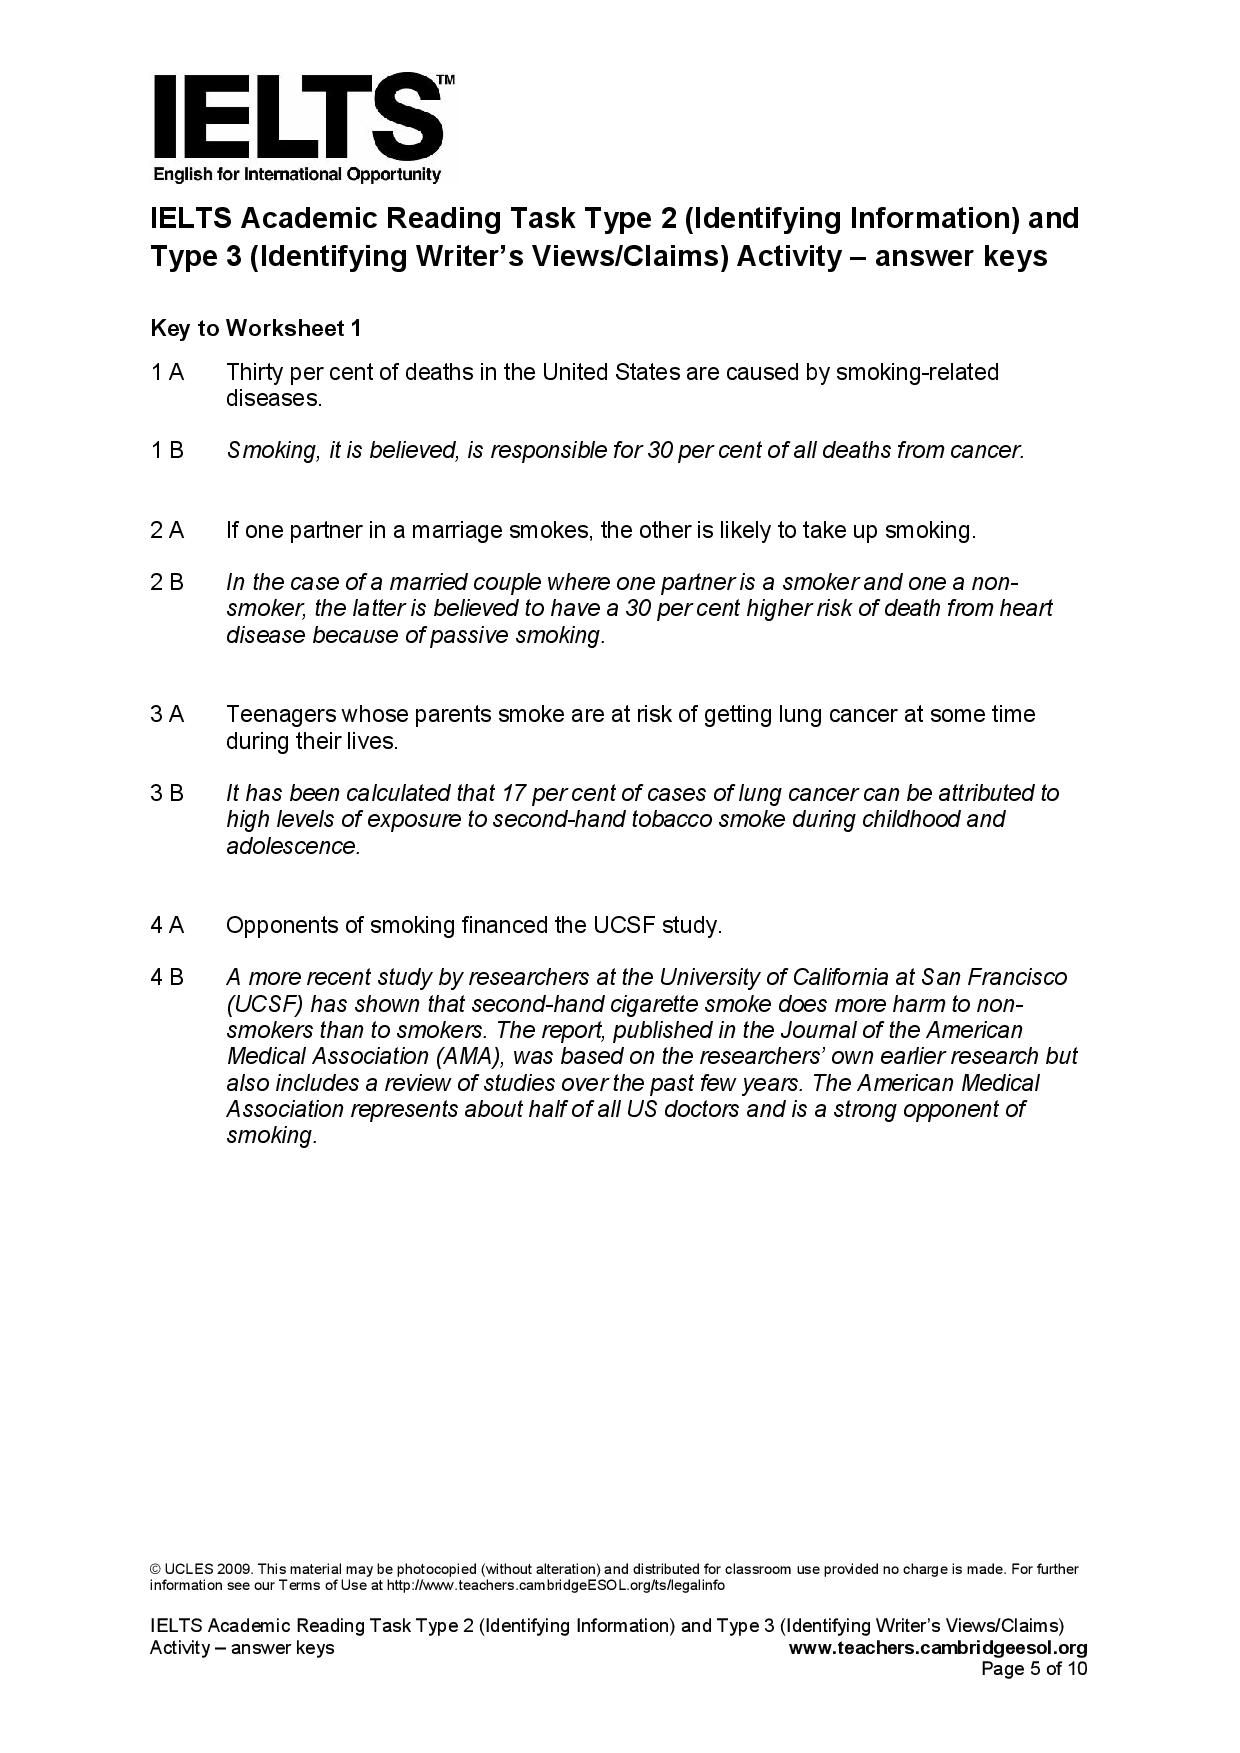 IELTS Academic Reading Task Type 2 Identifying Information and – Cancer Worksheet